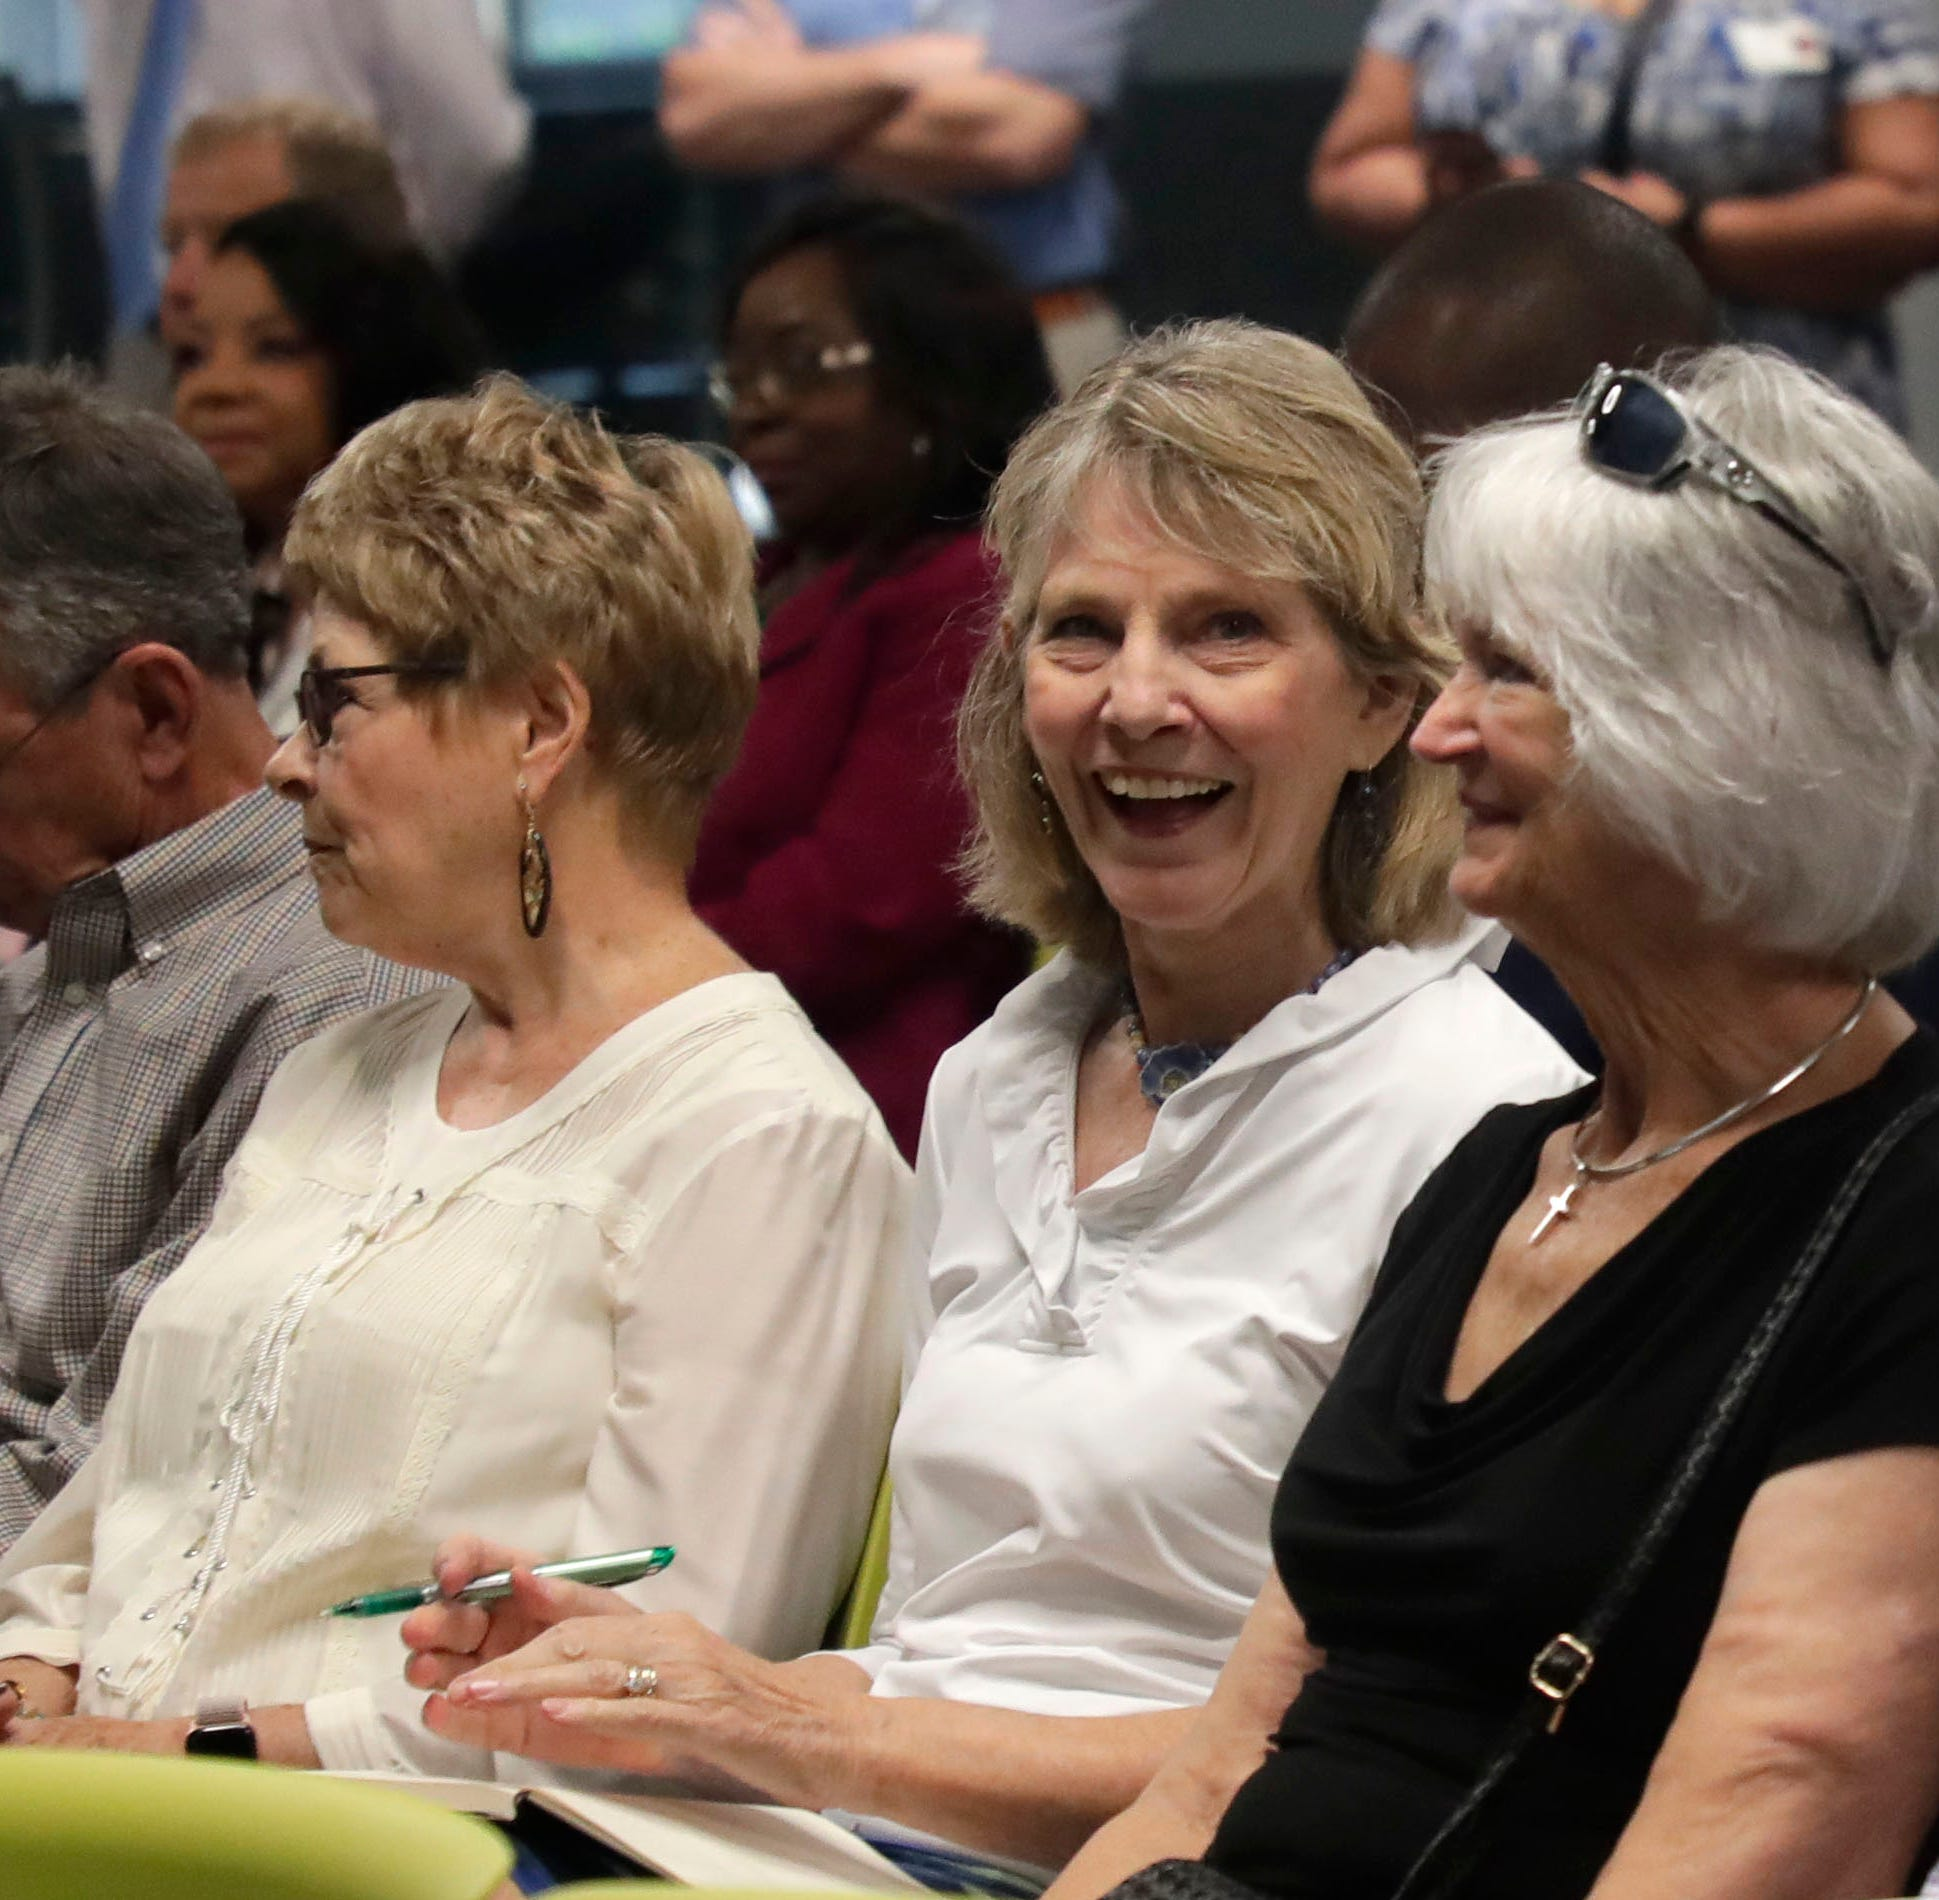 Greenville-inspired community conversation draws attention to update downtown master plan